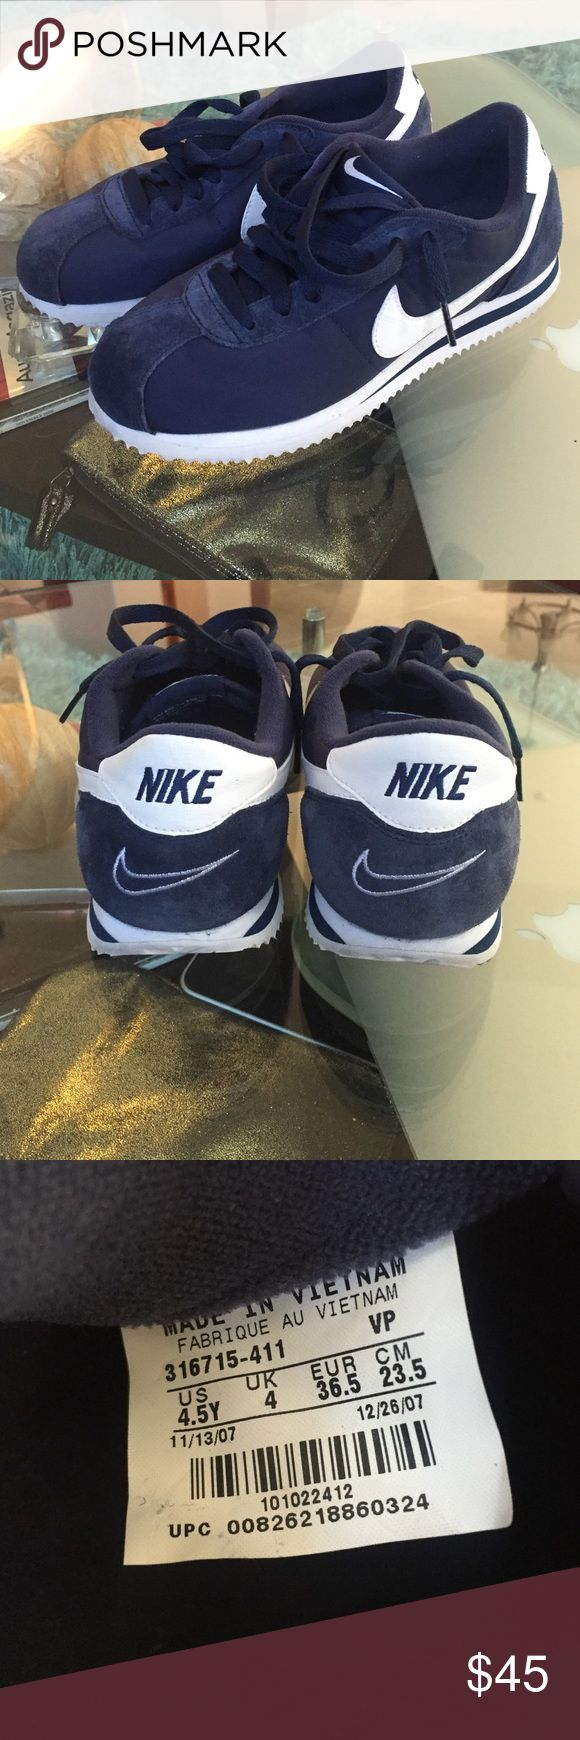 KIDS NIKE CORTEZ New without box KIDS NIKE CORTEZ SIZE 5.5Y Nike Shoes Sneakers